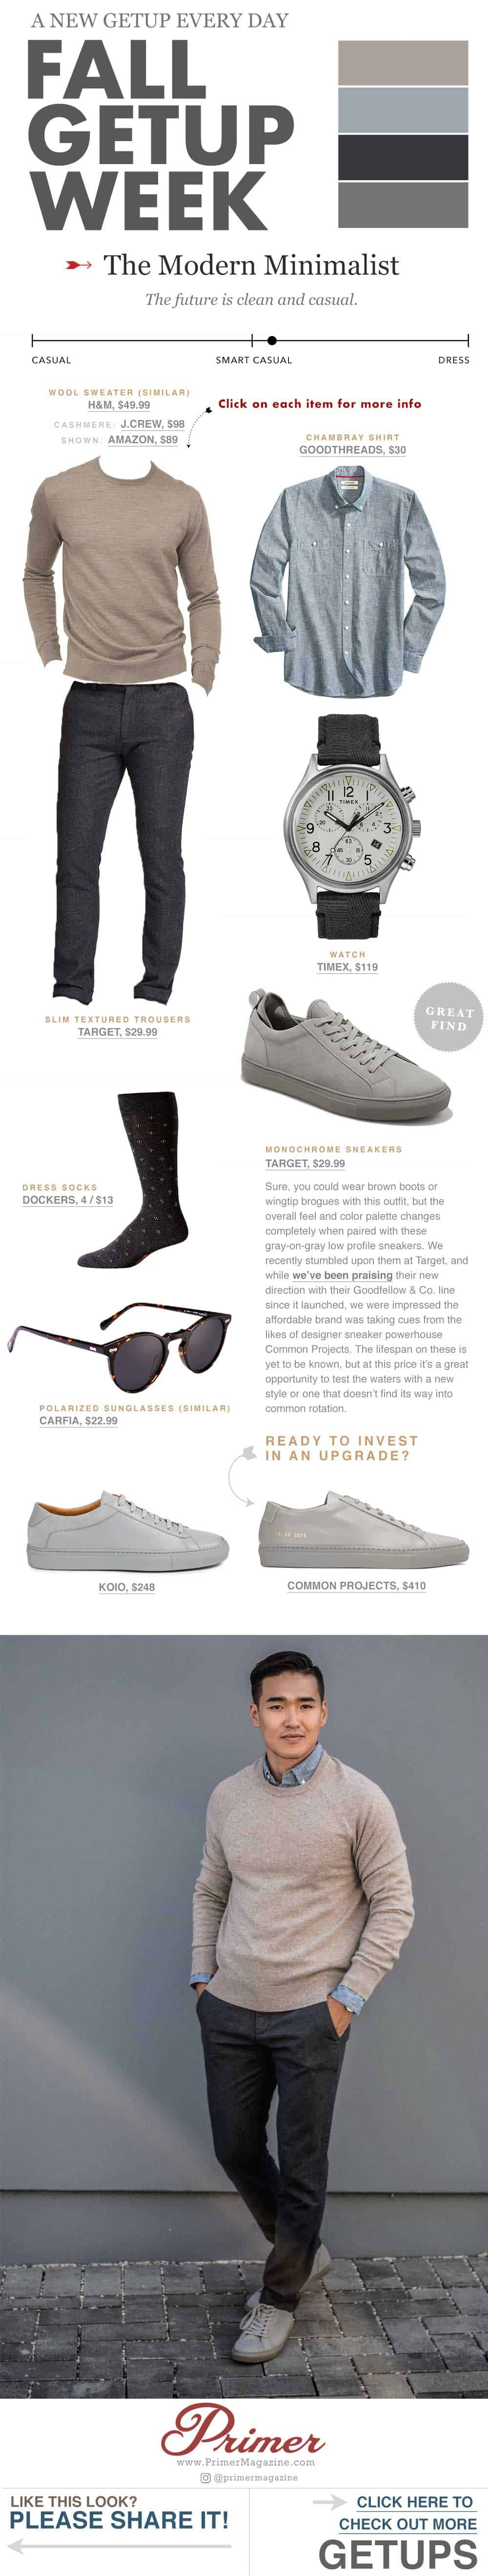 Fall Getup Week   Modern Minimalist Men's Fashion